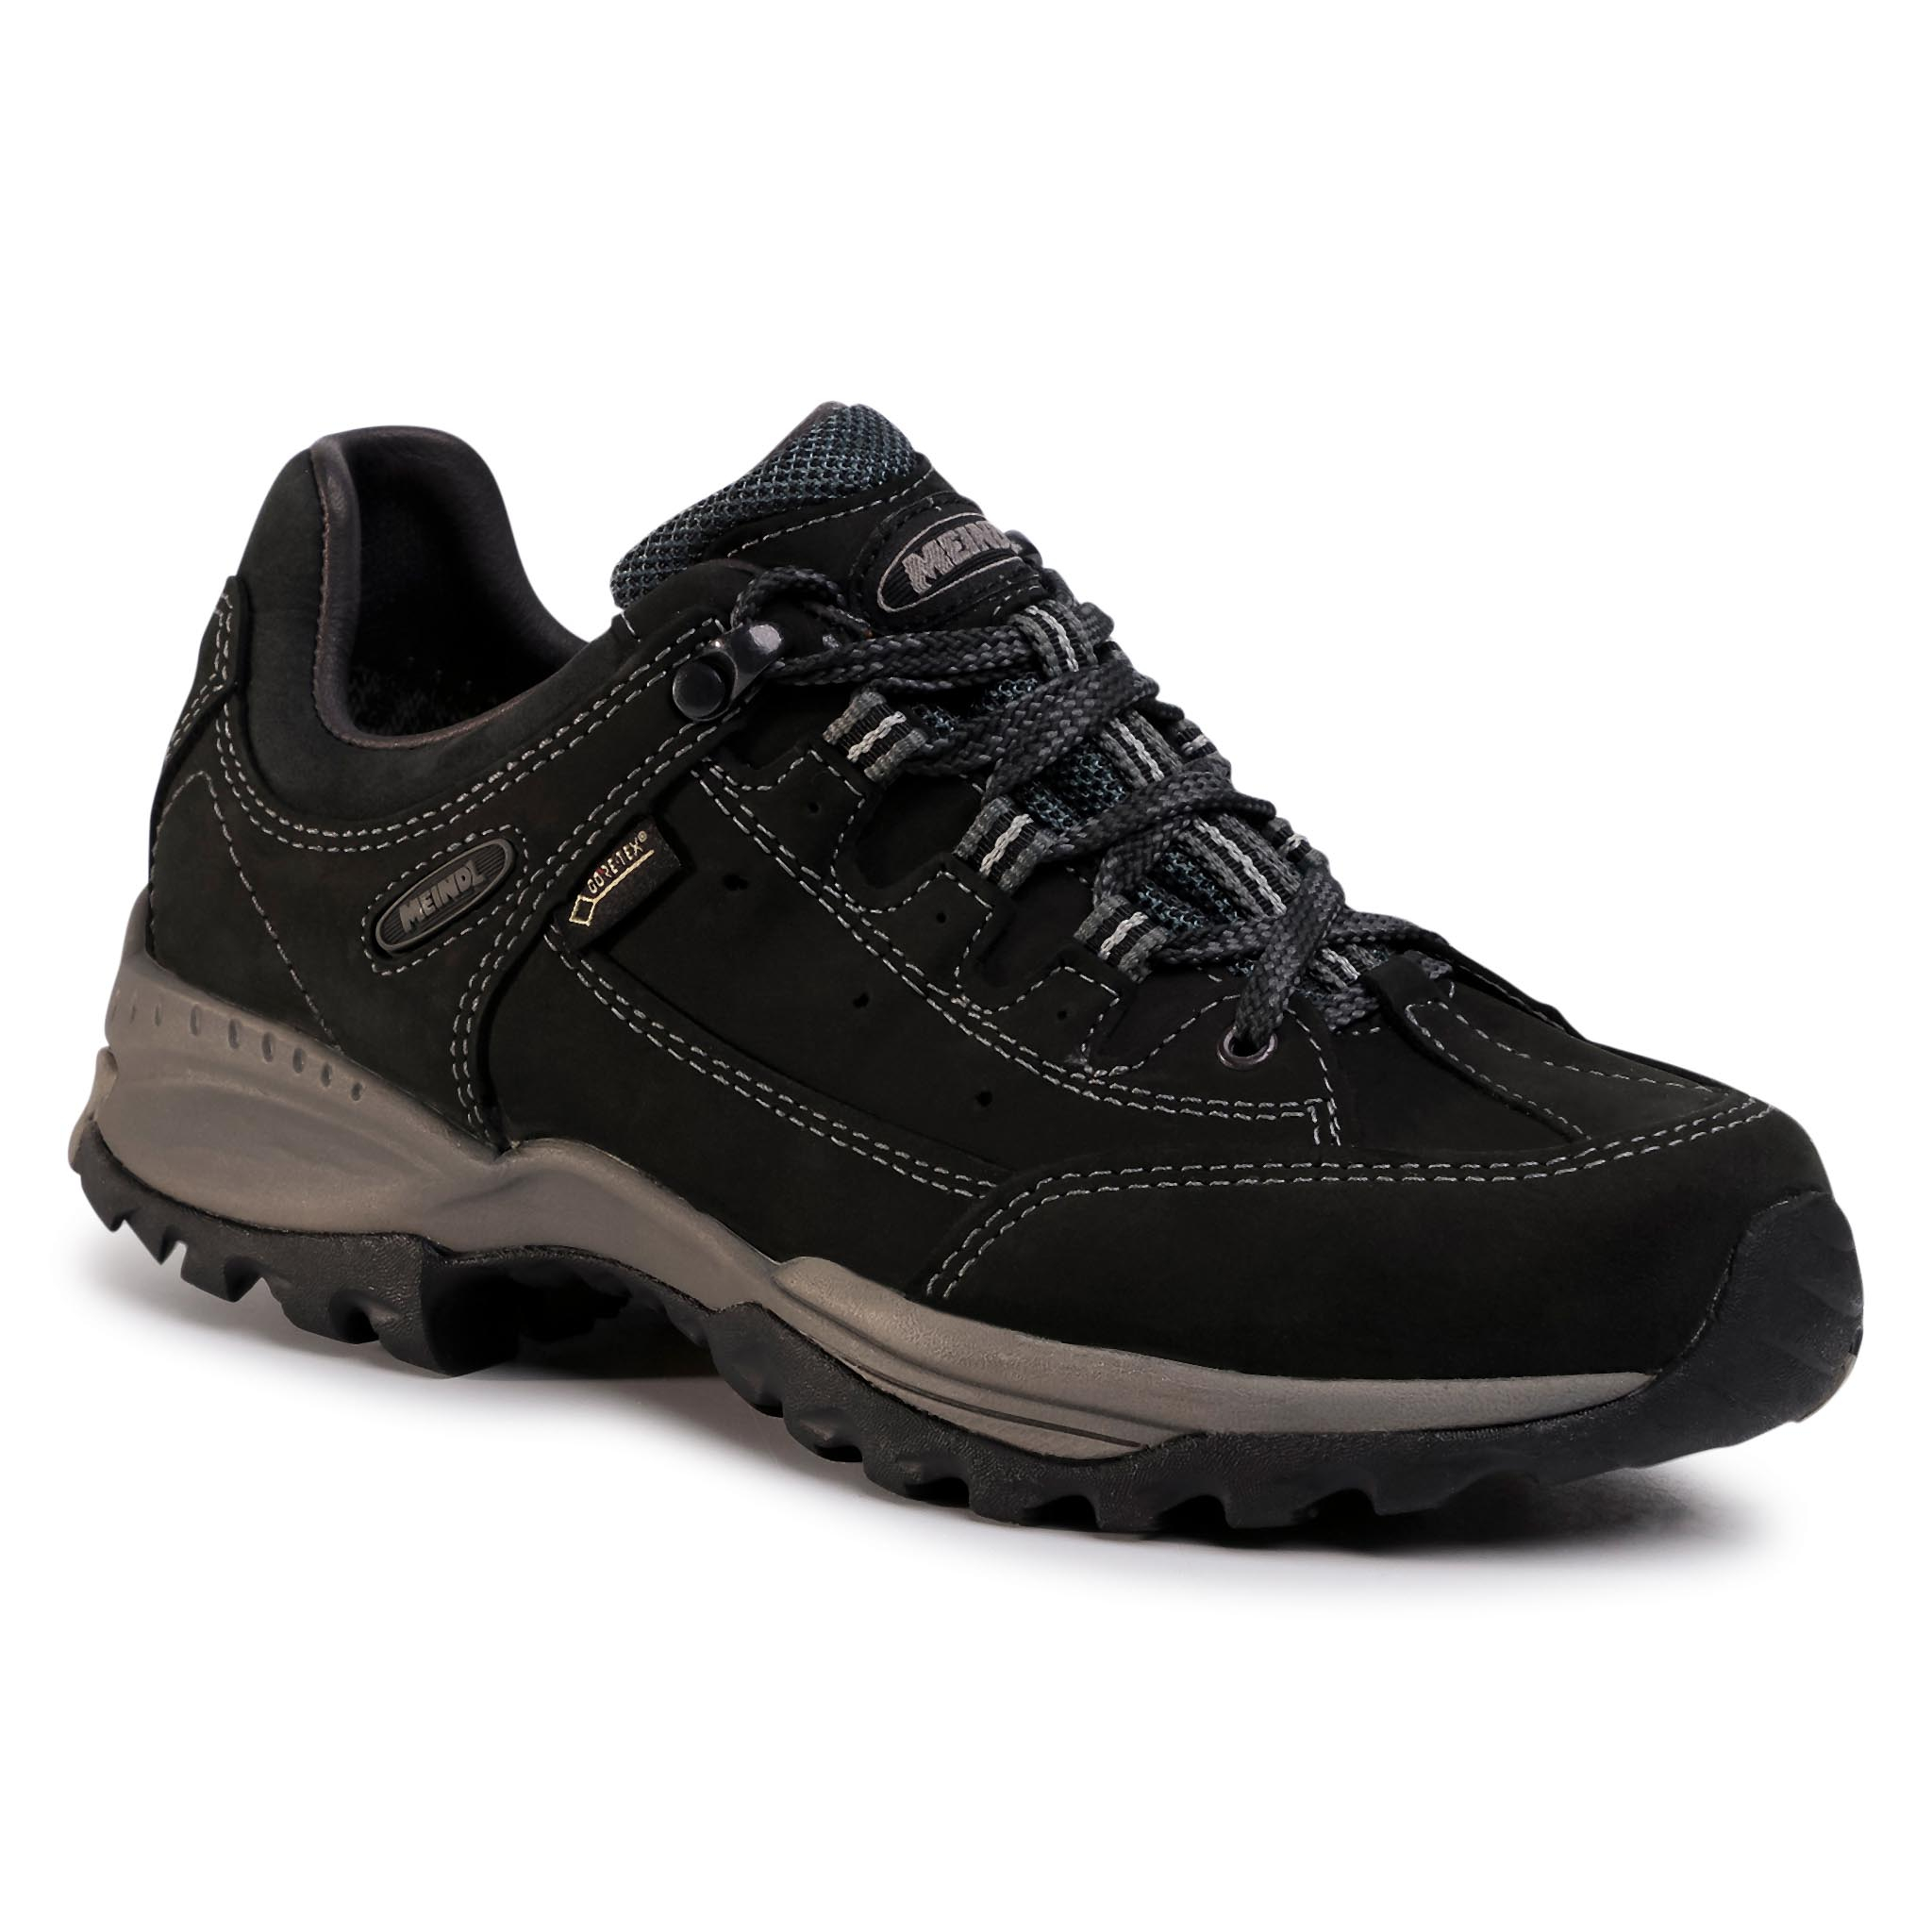 Trekkings Meindl - Laredo Lady Gtx Gore-Tex 3351 Anthrazit/Navy 31 imagine epantofi.ro 2021